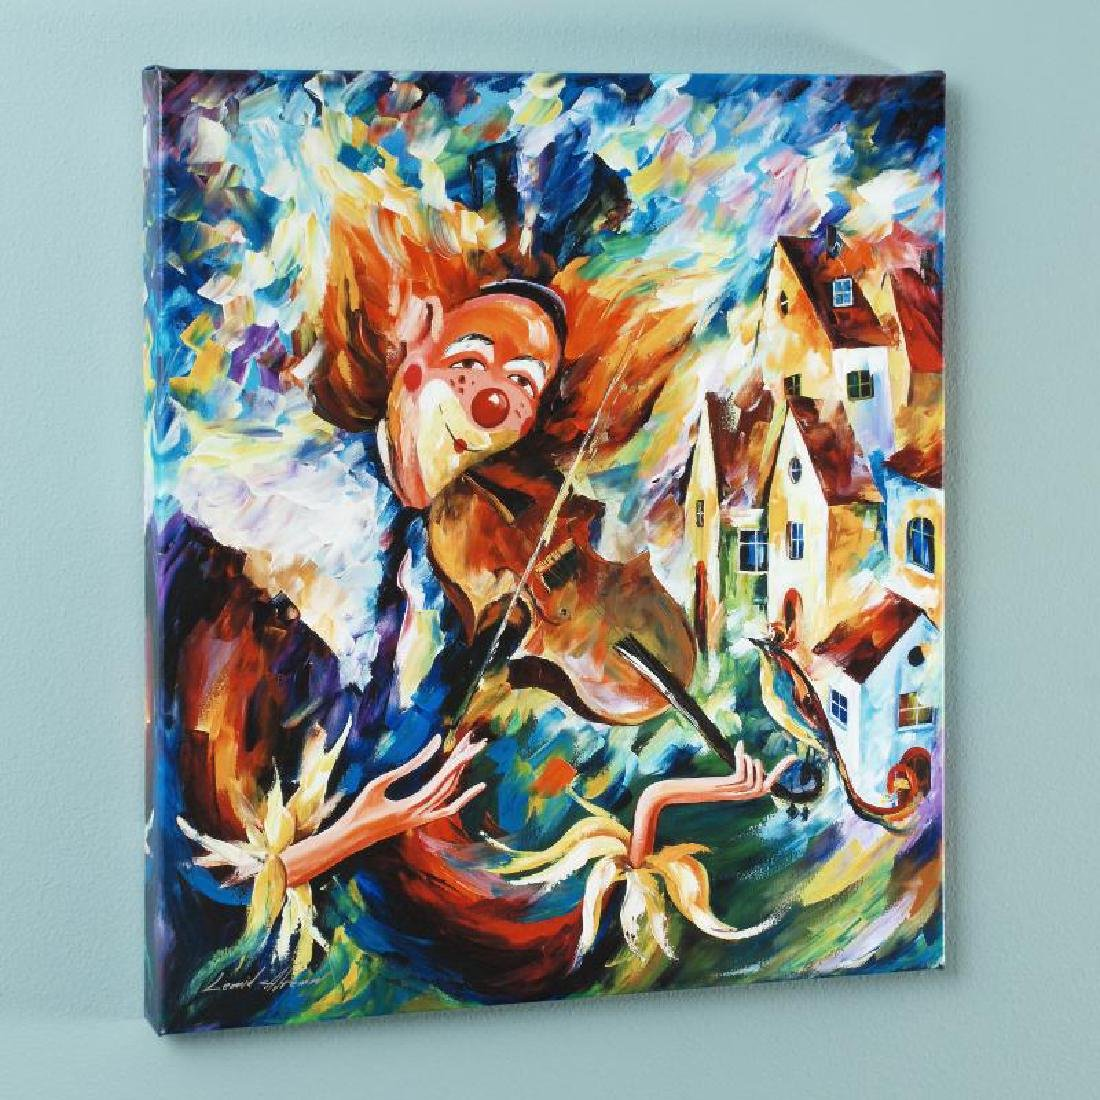 For Fun LIMITED EDITION Giclee on Canvas by Leonid